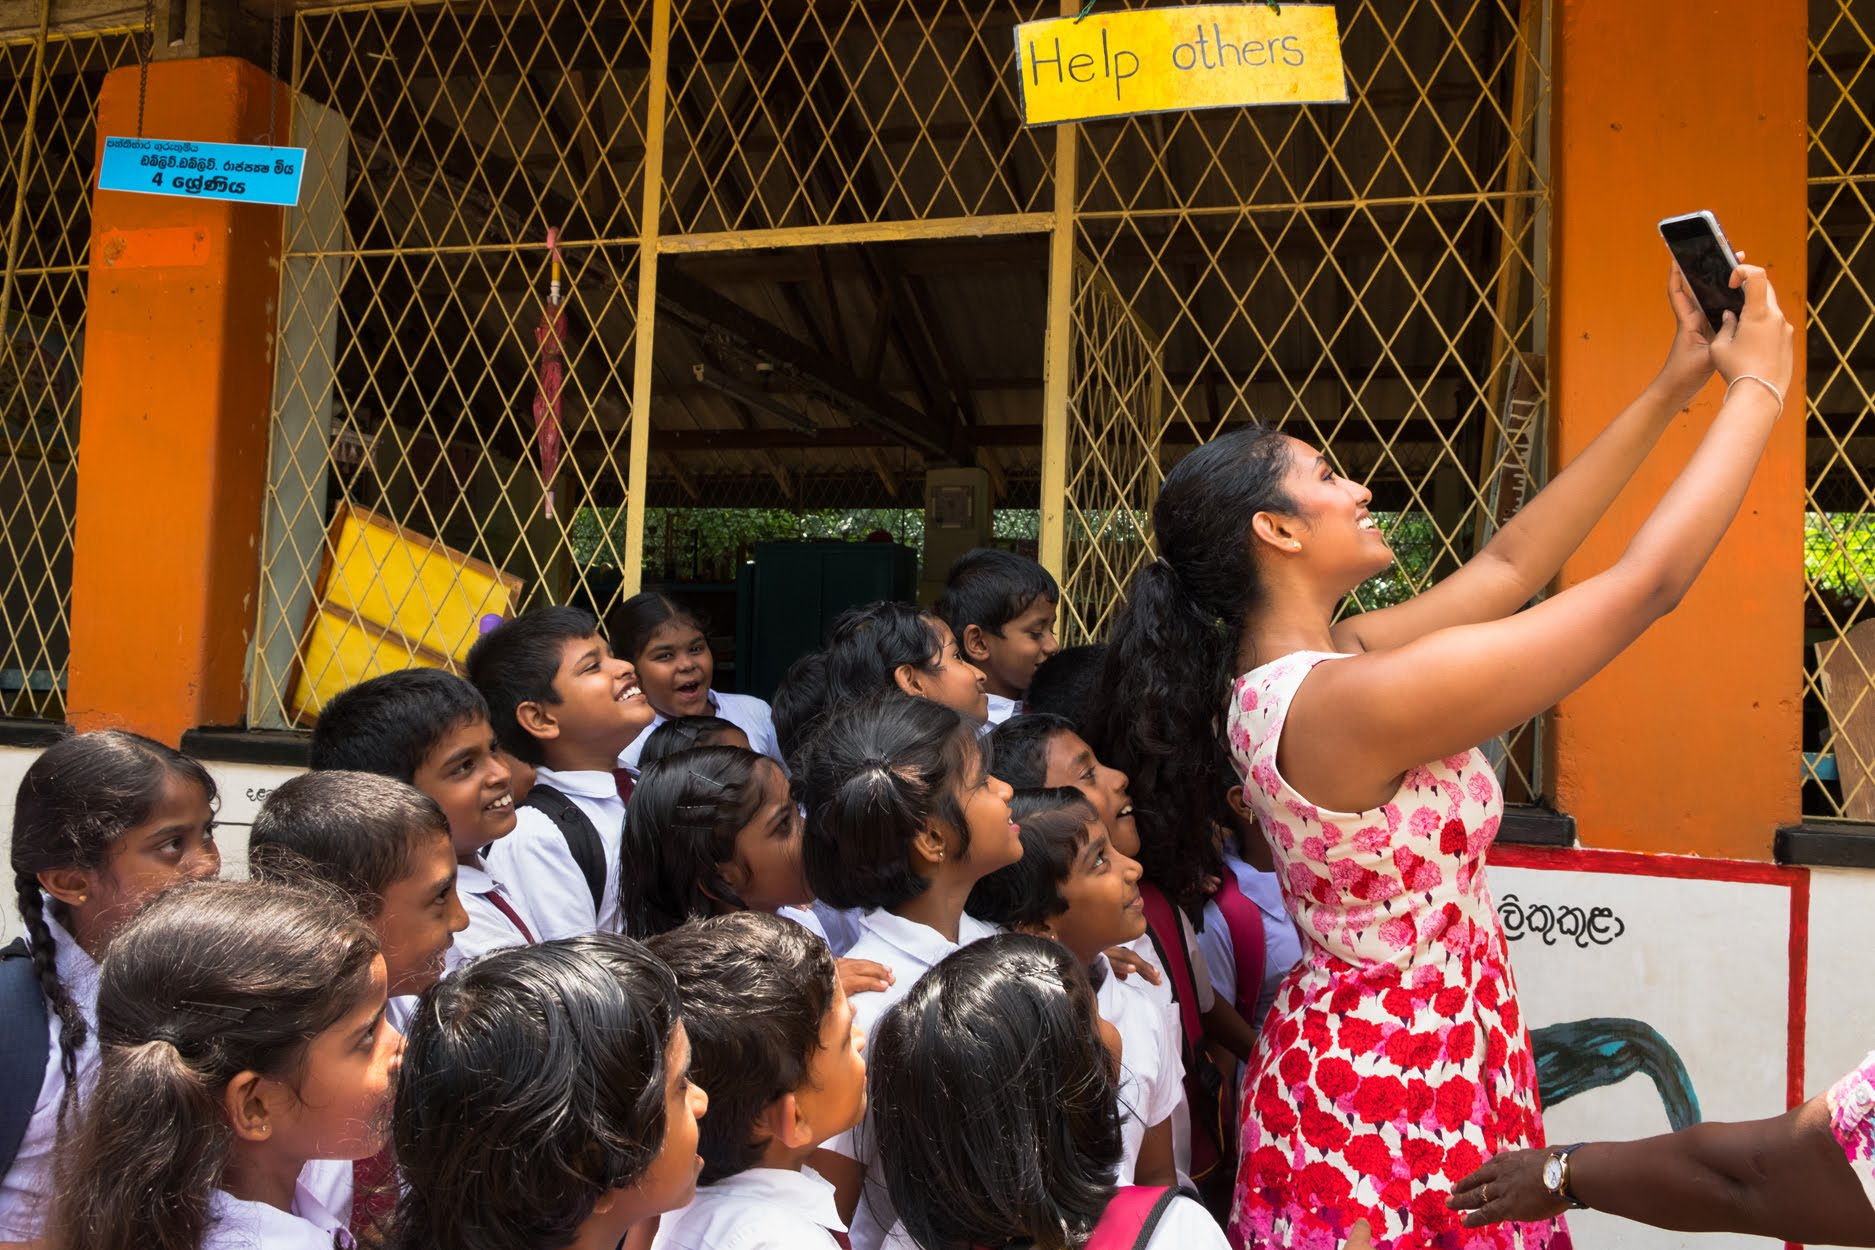 Palpita lower school students join Hiruni in a selfie outside in their courtyard that she will post to social media for Close To My Heart.